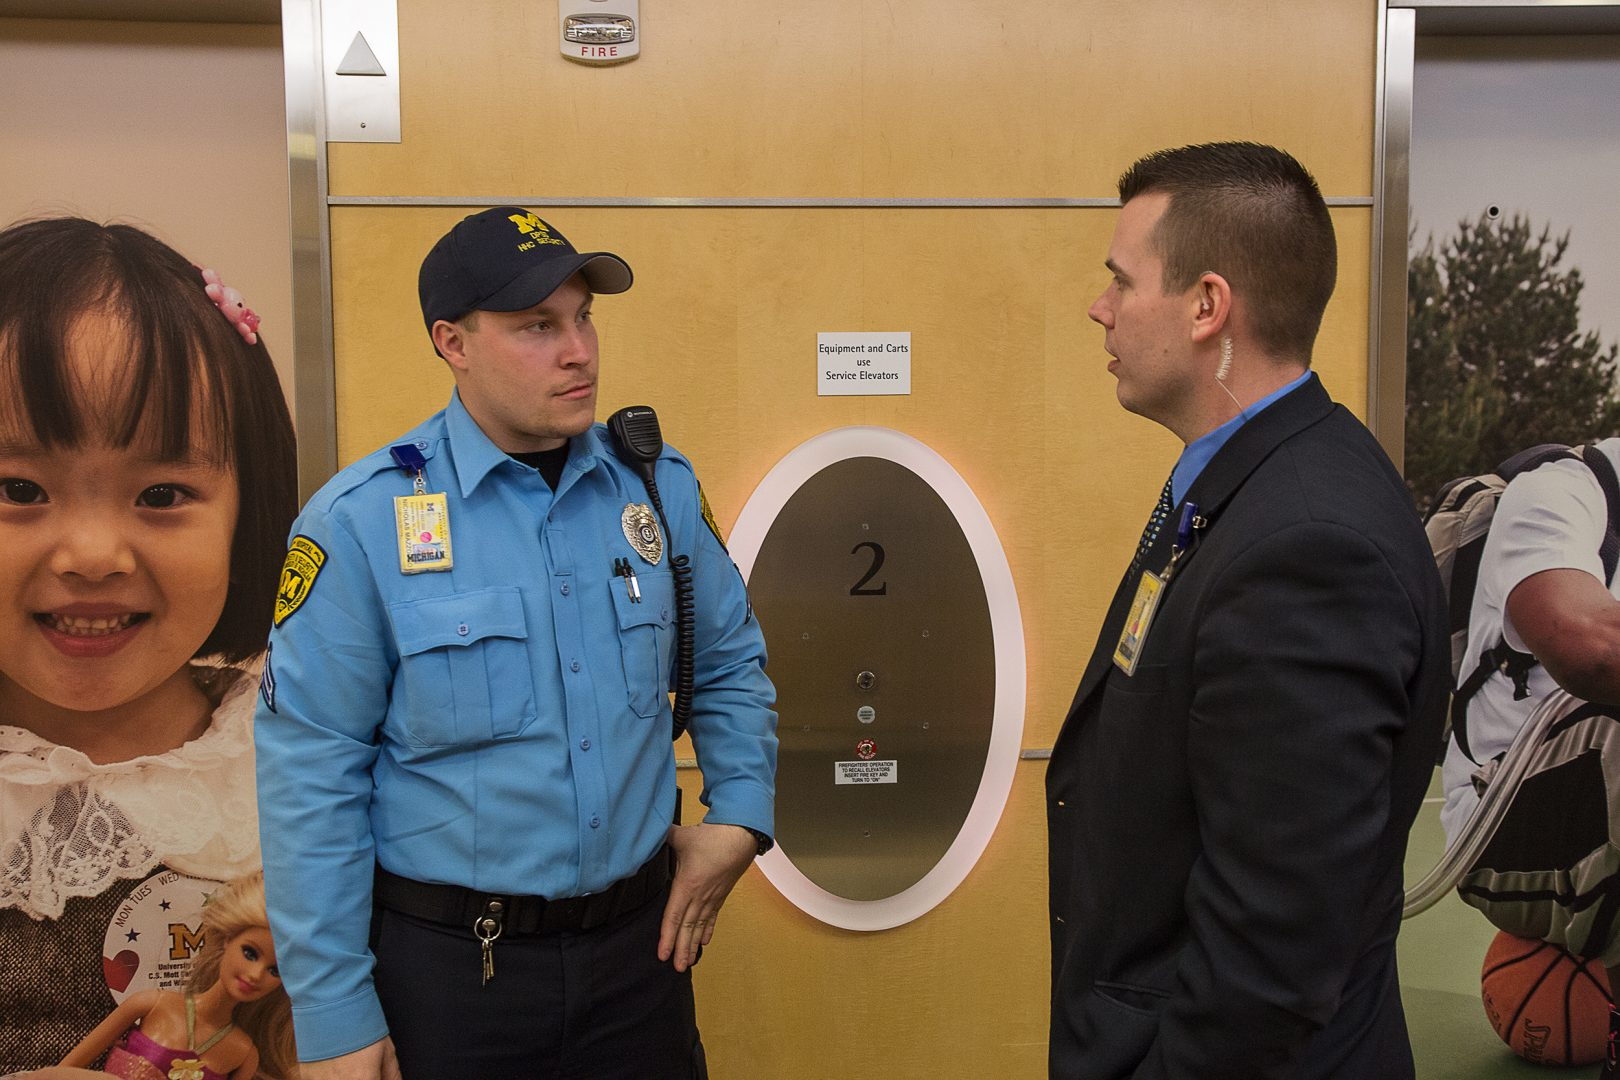 Security Corporal Mazzacco speaks with GSS Supervisor Dombrowski